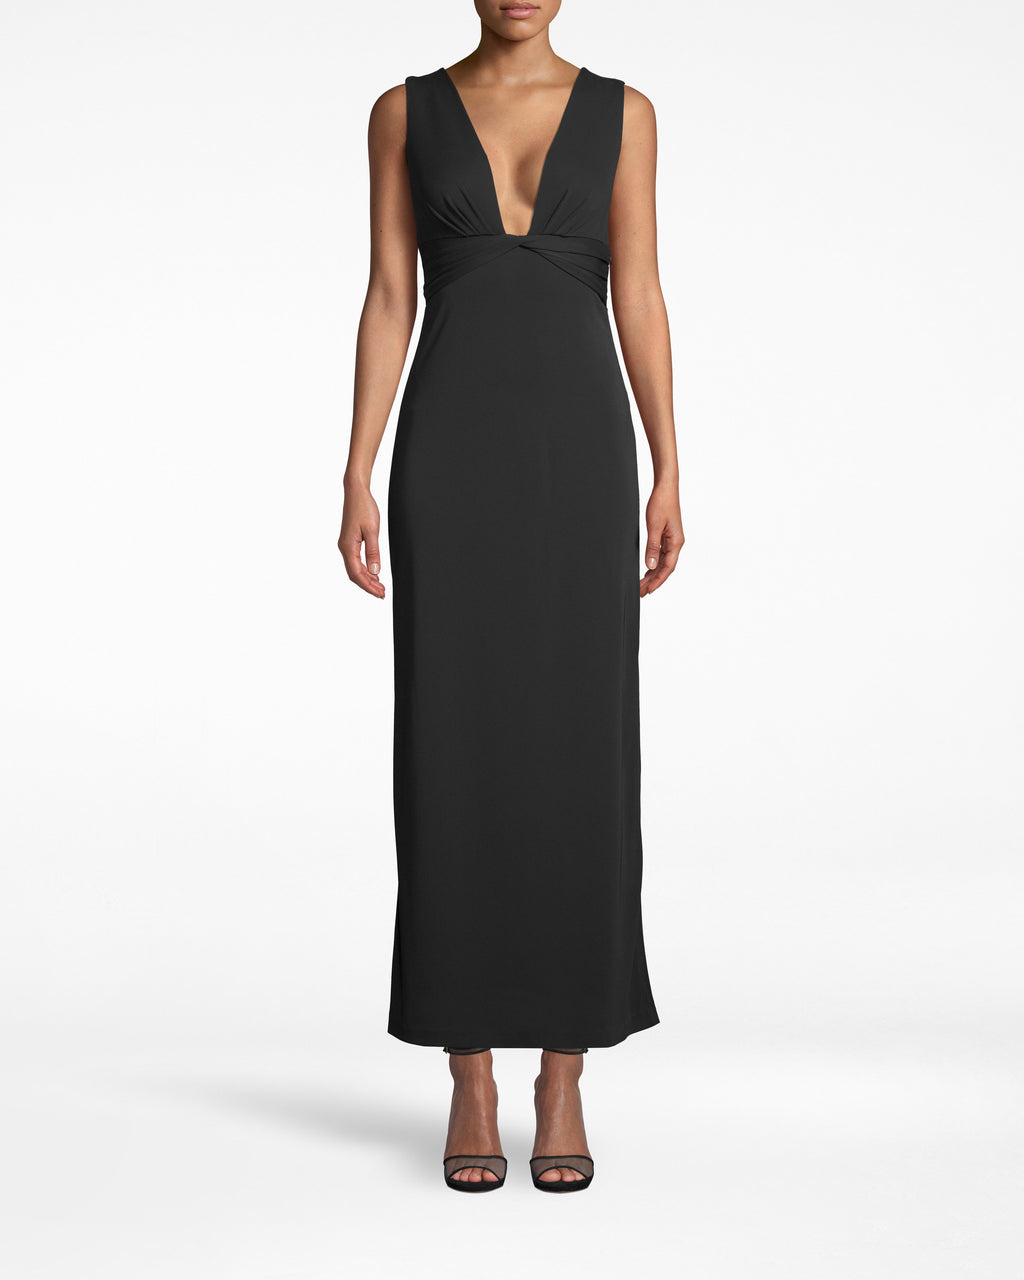 BQ10375 - STRETCHY MATTE JERSEY PLUNGE GOWN - dresses - long - ELEGANT EVENING REQUIRED. FEATURING A PLUNGING NECKLINE AND ANKLE SKIMMING HEMLINE SO YOU CAN SHOW OFF YOUR FAVORITE HEELS. PAIR WITH SPARKLY ACCESSORIES.